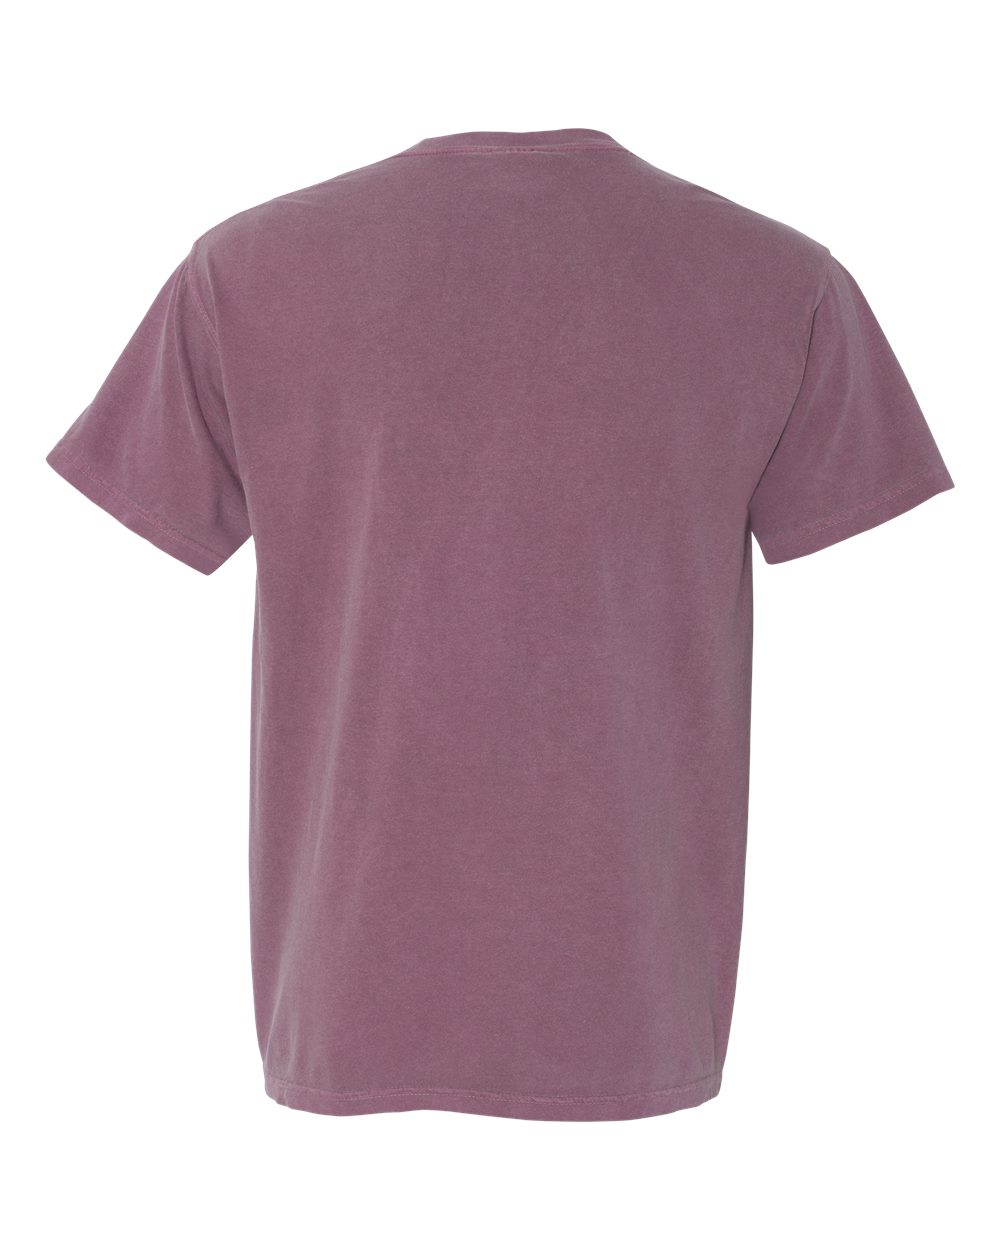 Comfort-Colors-Men-039-s-6-1-oz-Garment-Dyed-Pocket-T-Shirt-6030CC-S-3XL thumbnail 4